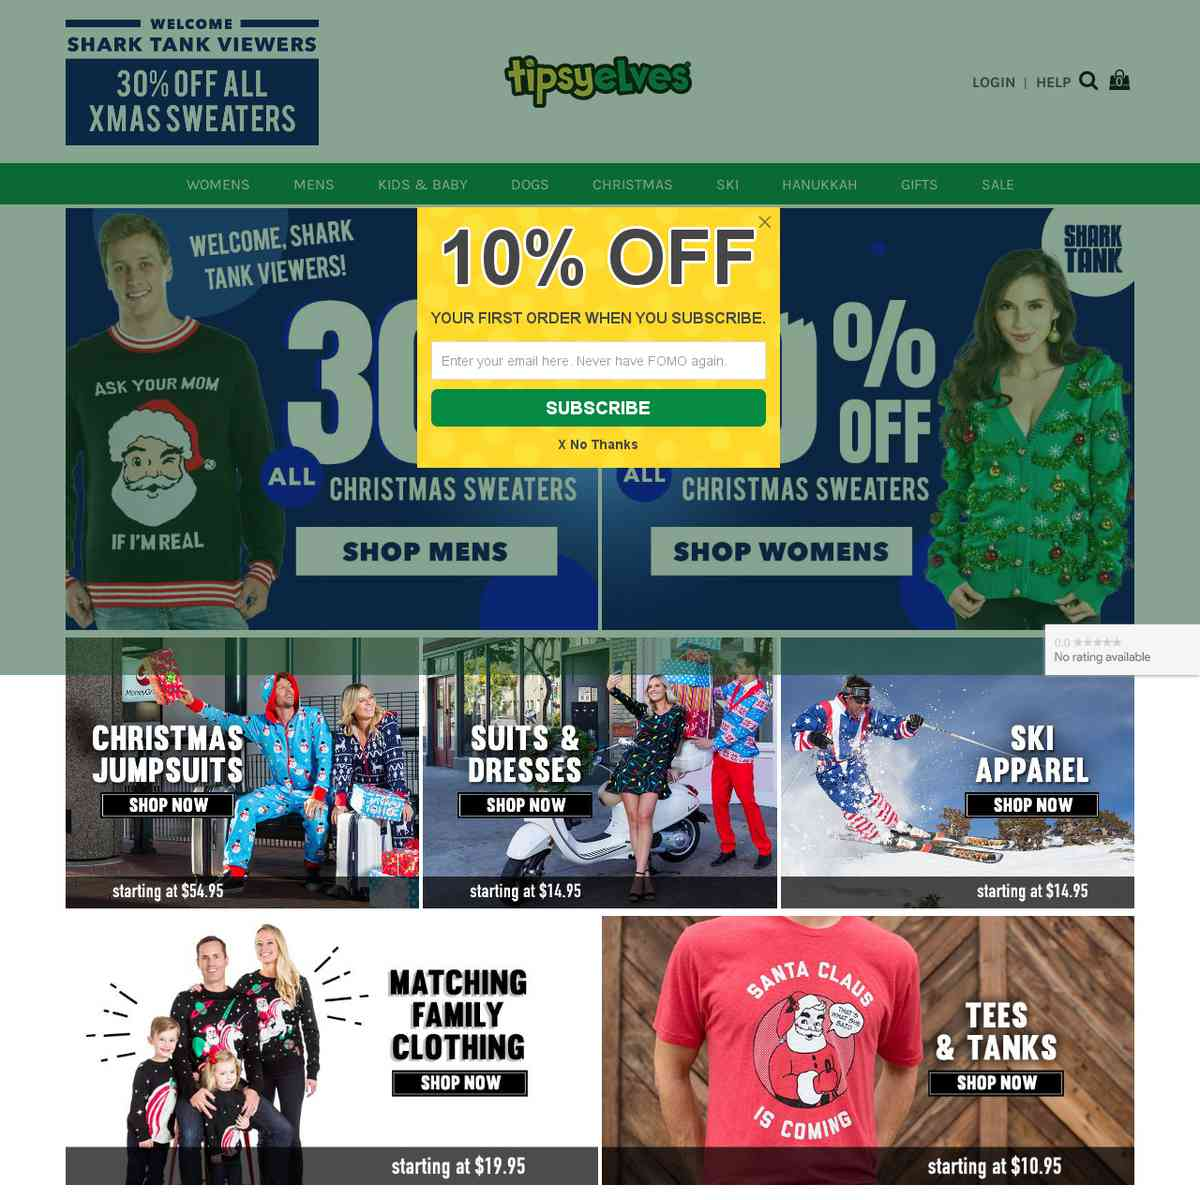 Tipsy Elves: Fun Clothing & Outfits For Every Holiday